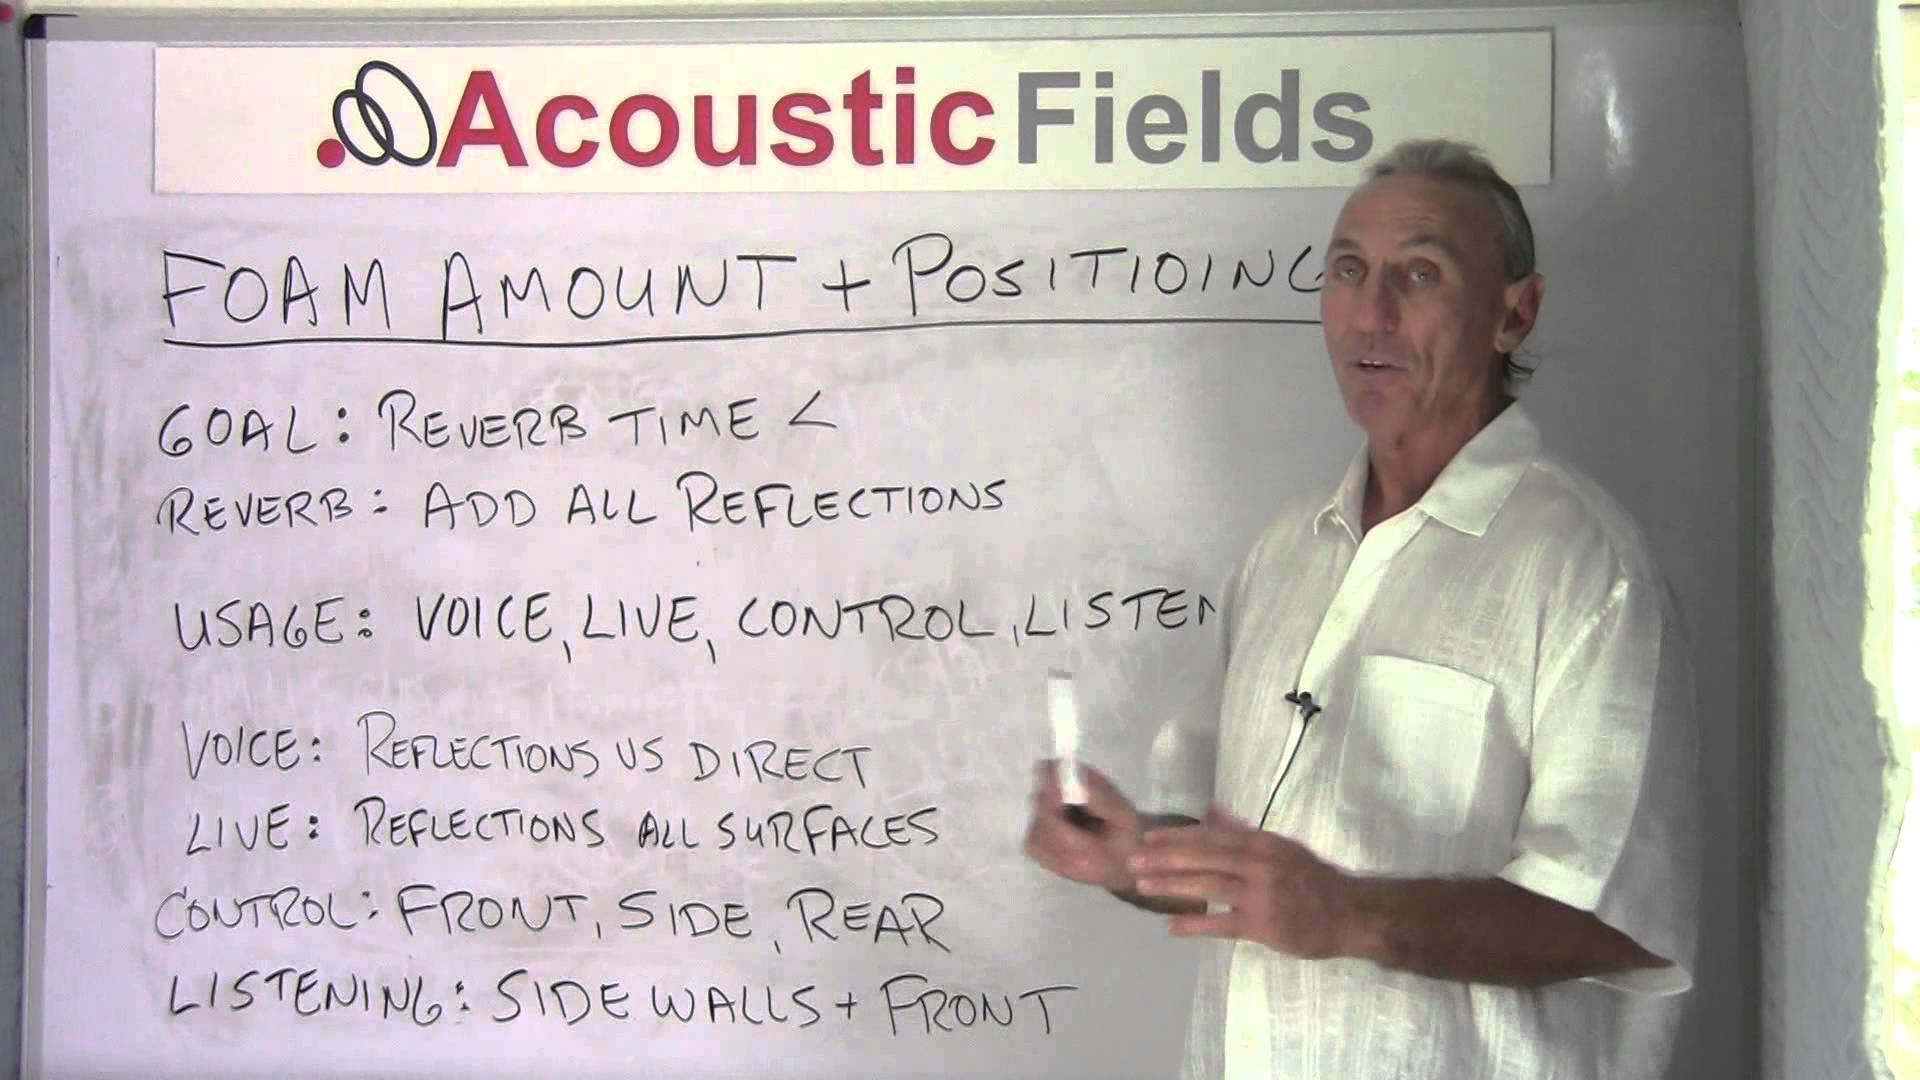 Acoustic Foam Placement Guide – Amount & Positioning, What is best for you?